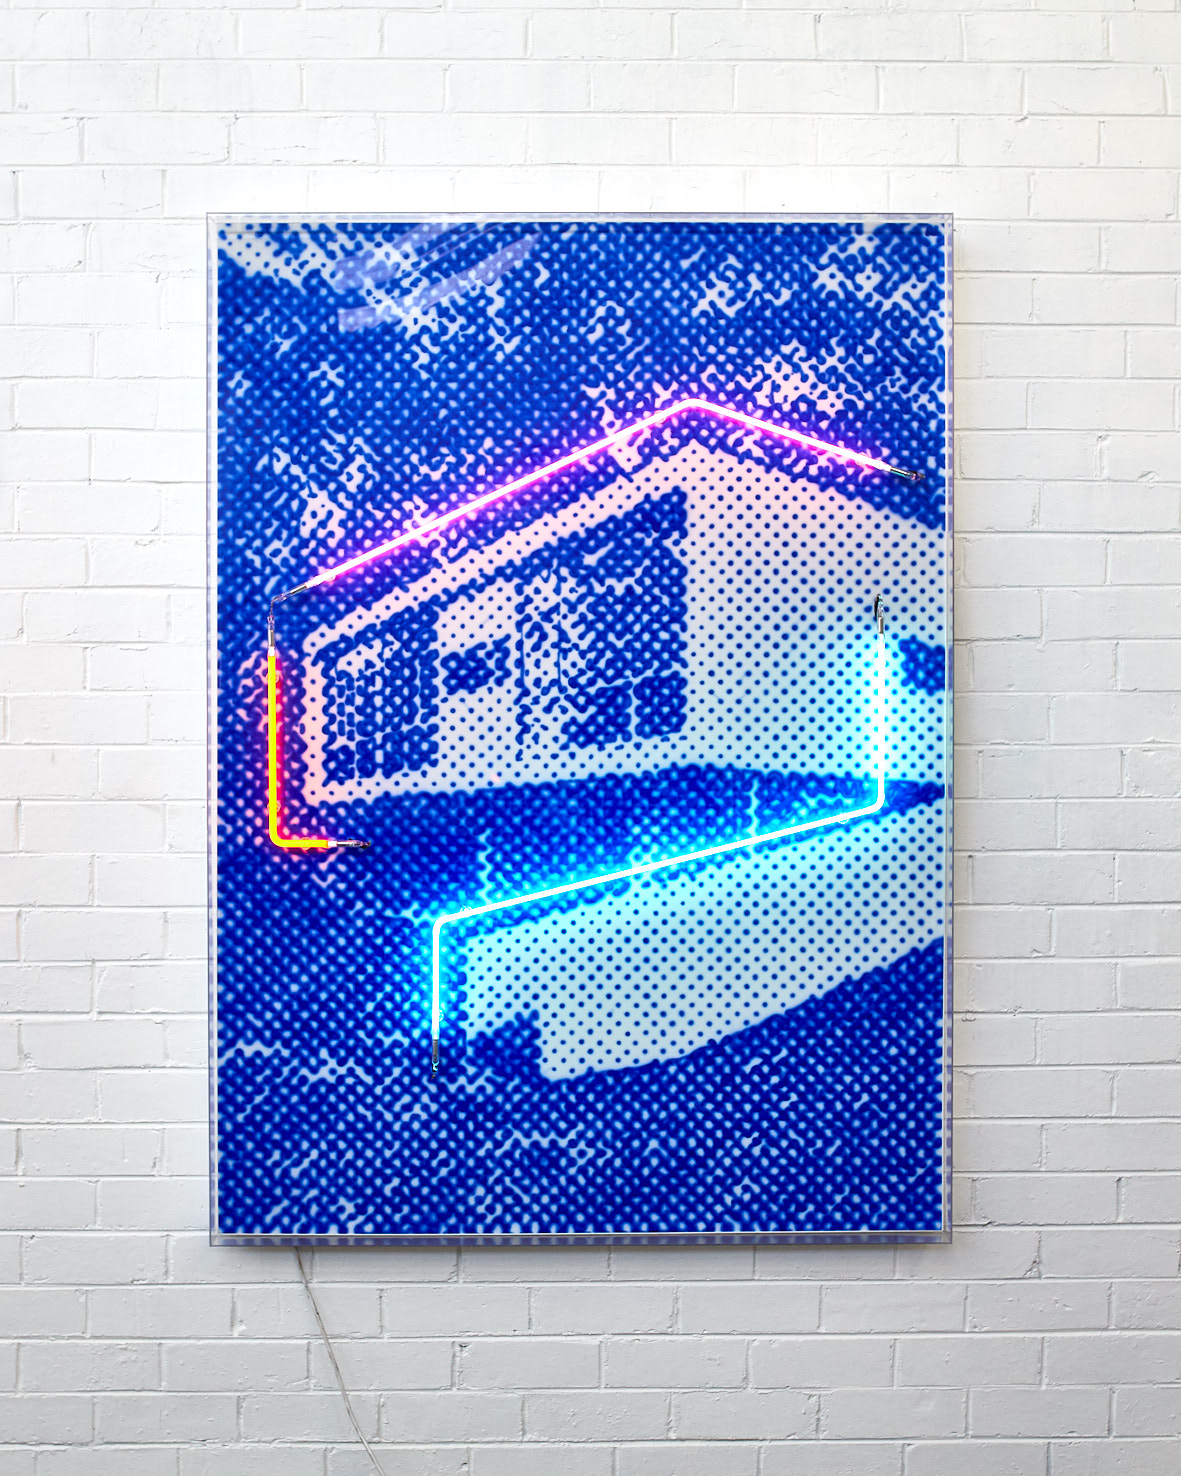 Bushland Rose, 2019  Airbrush polymer and neon on Dibond, Acrylic frame 105x160cm